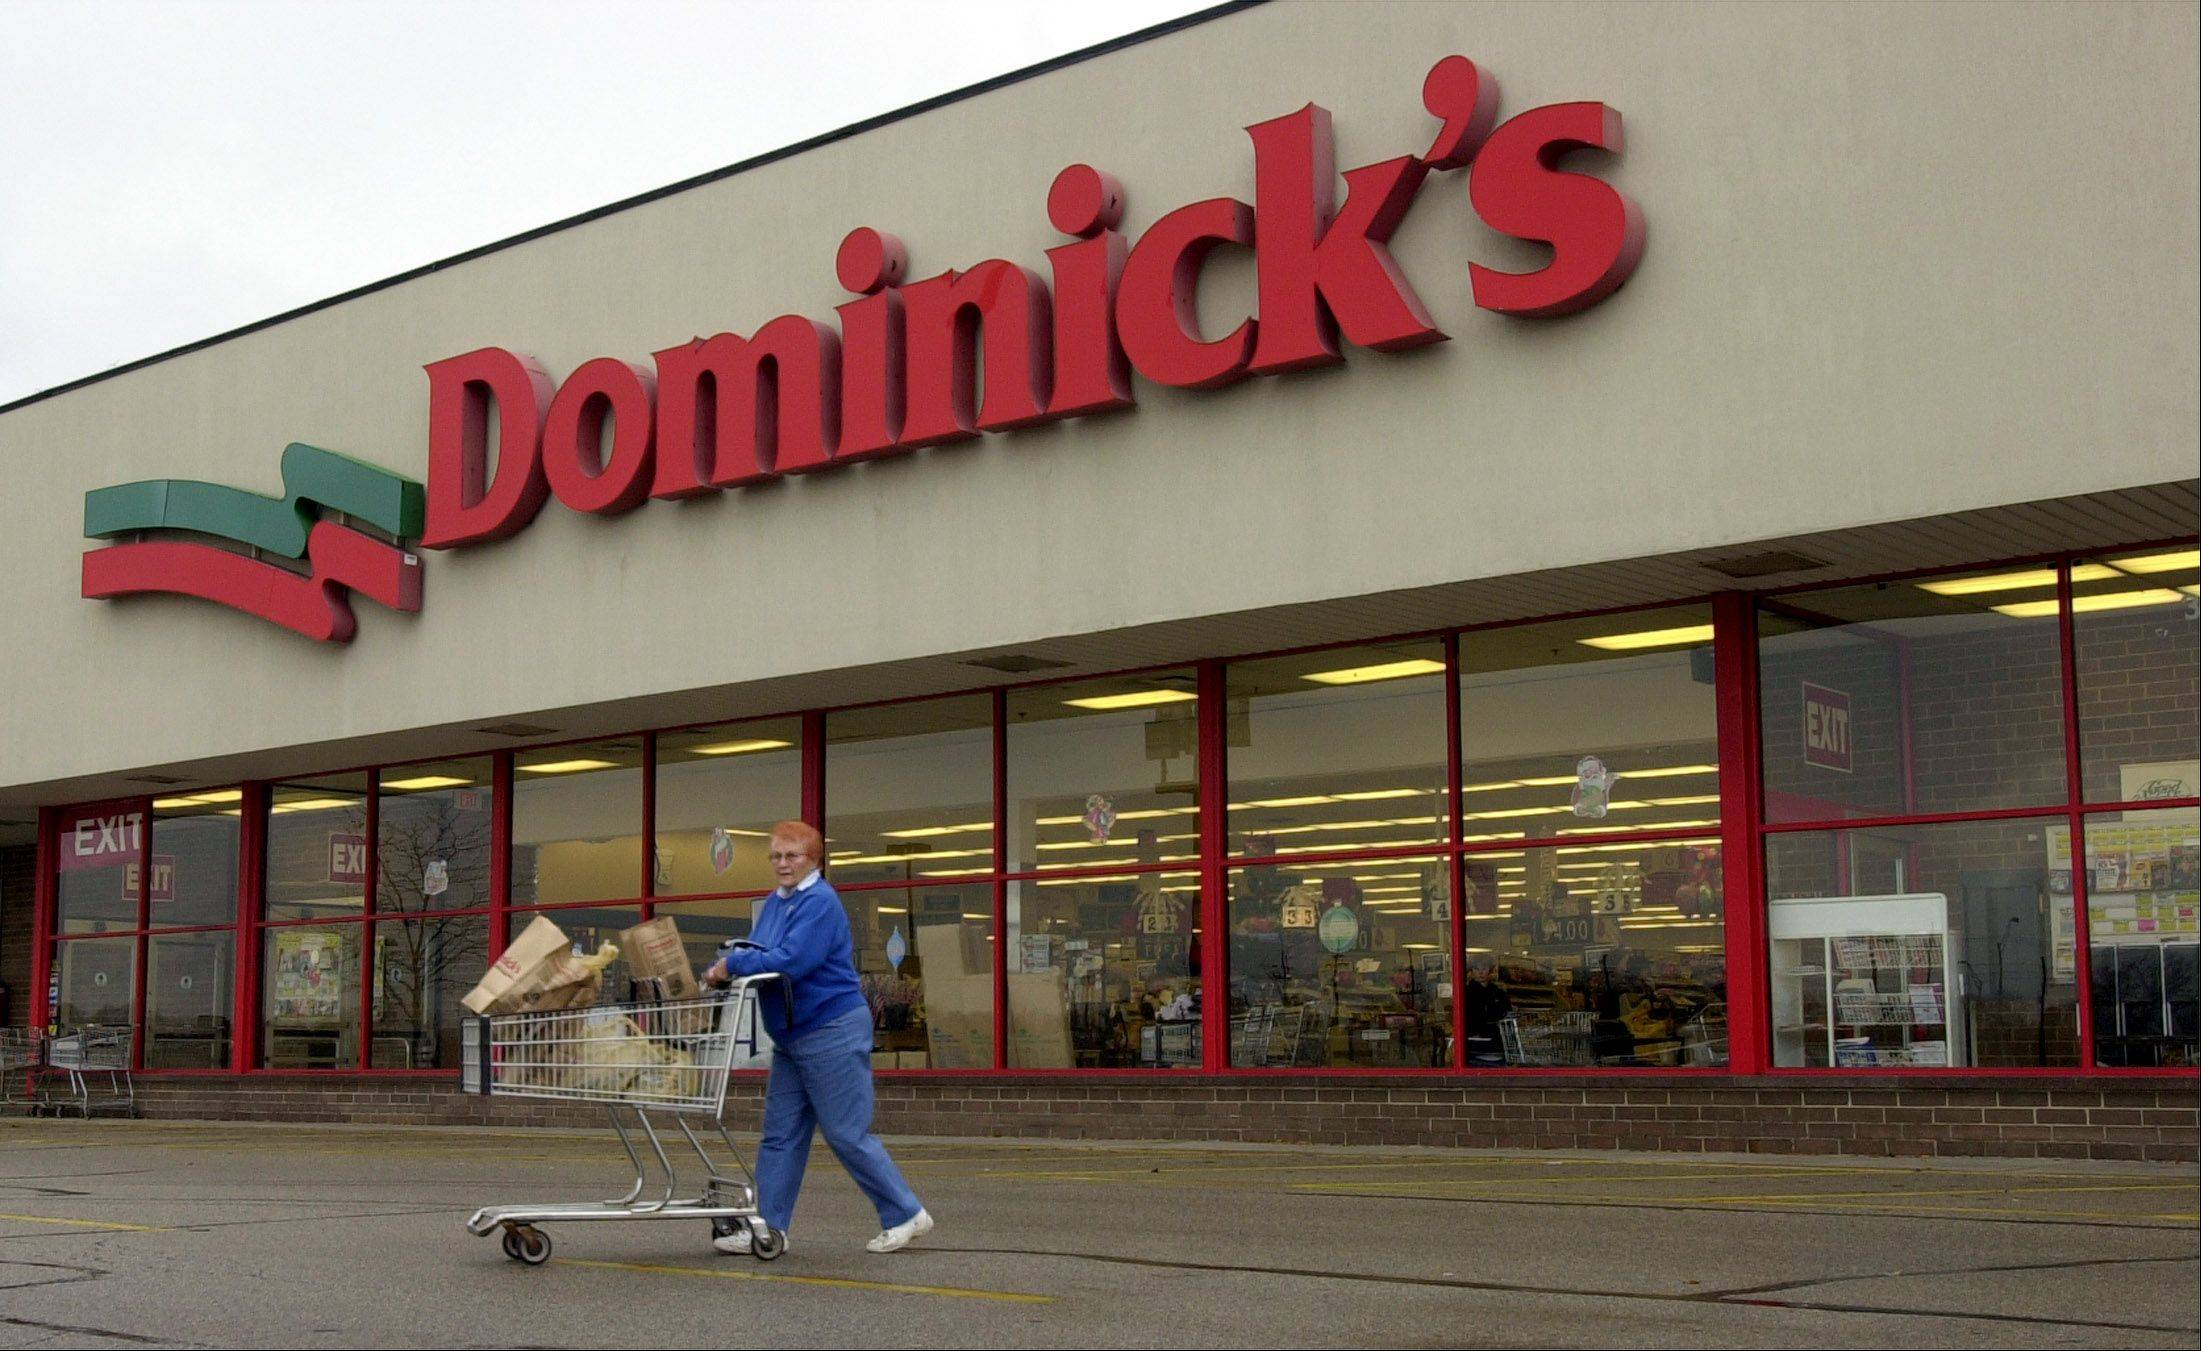 Joe Caputo & Sons acquires 4 former Dominick's stores